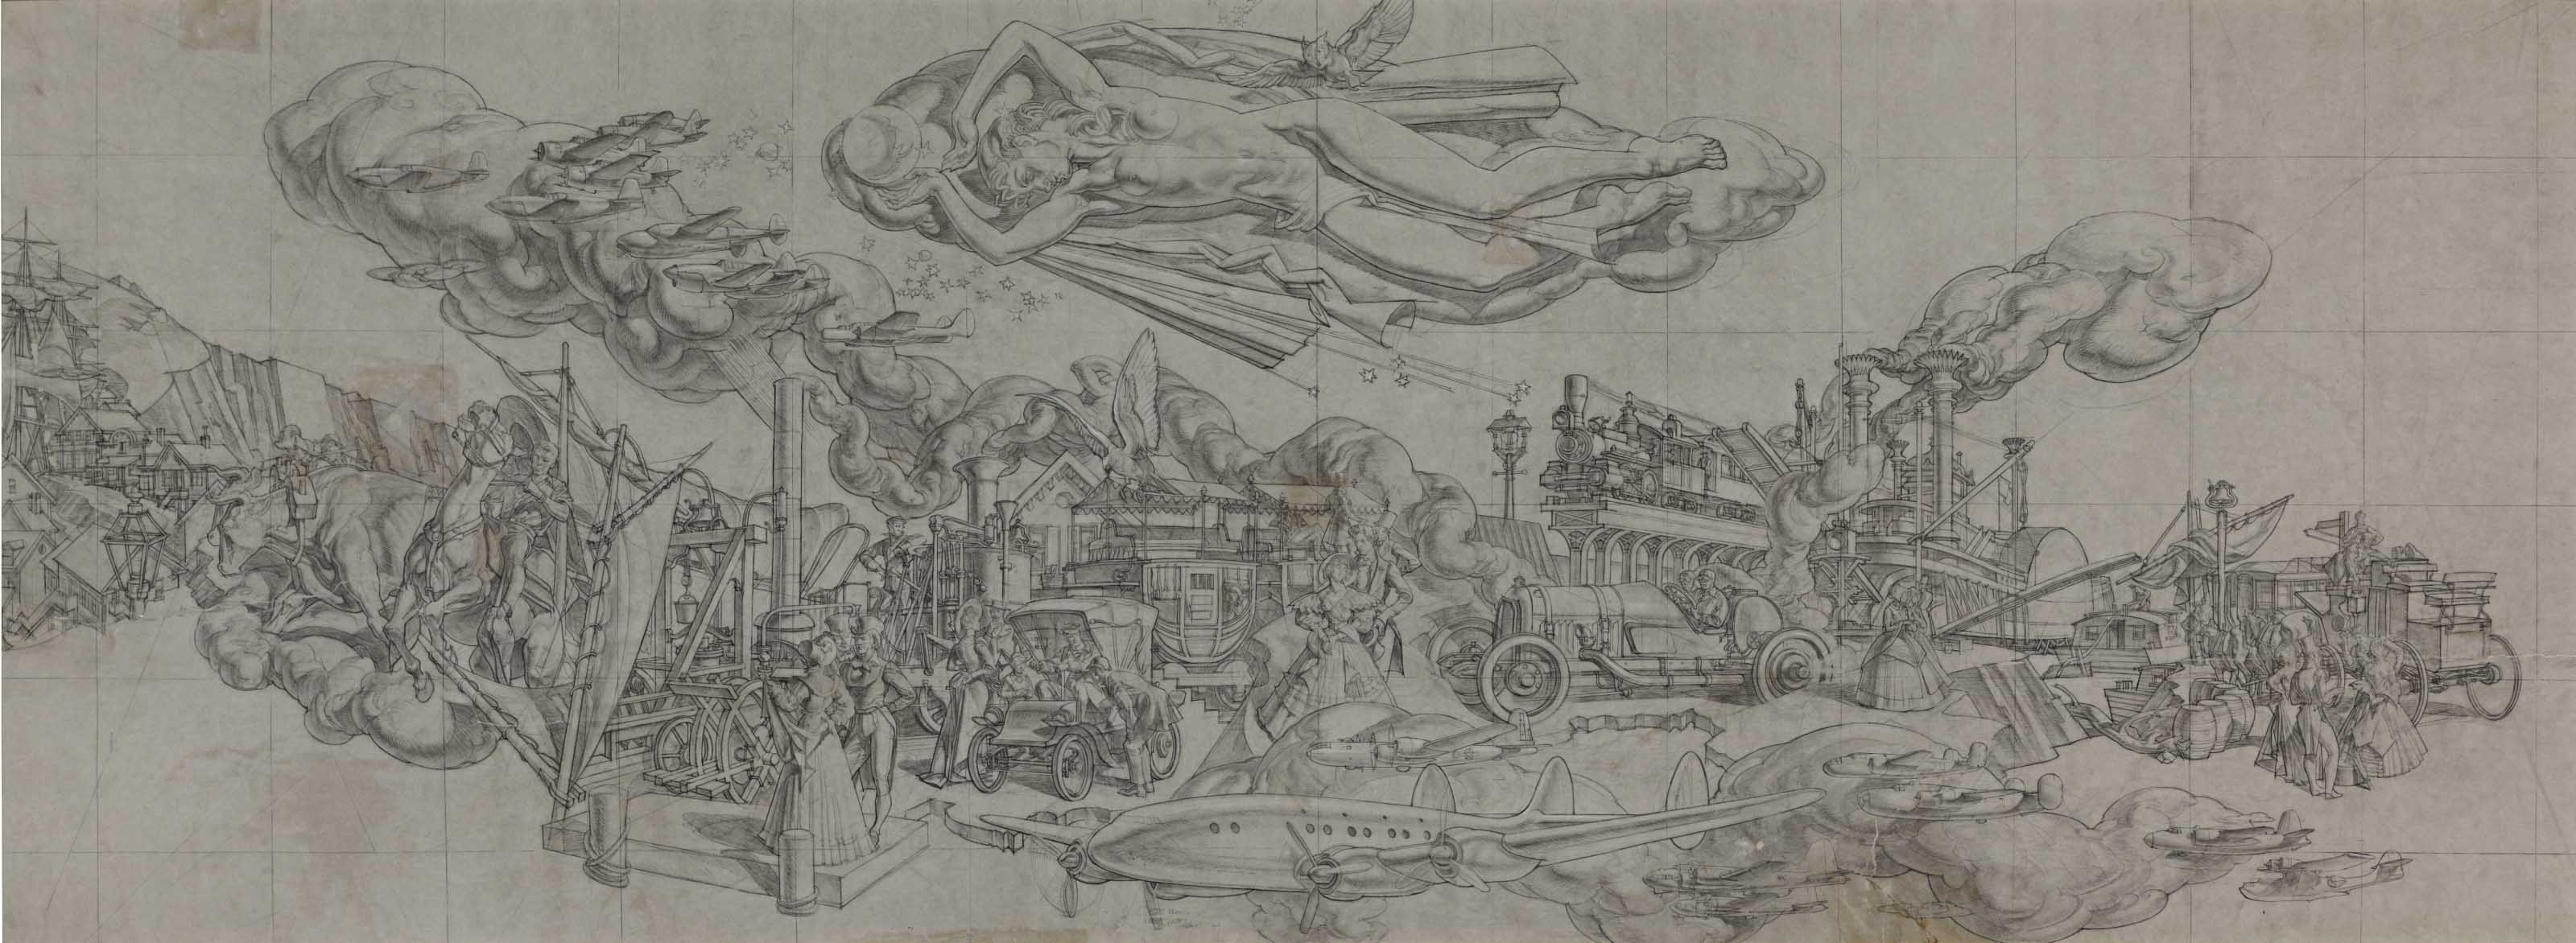 Study for 'The History of Transportation' Mural